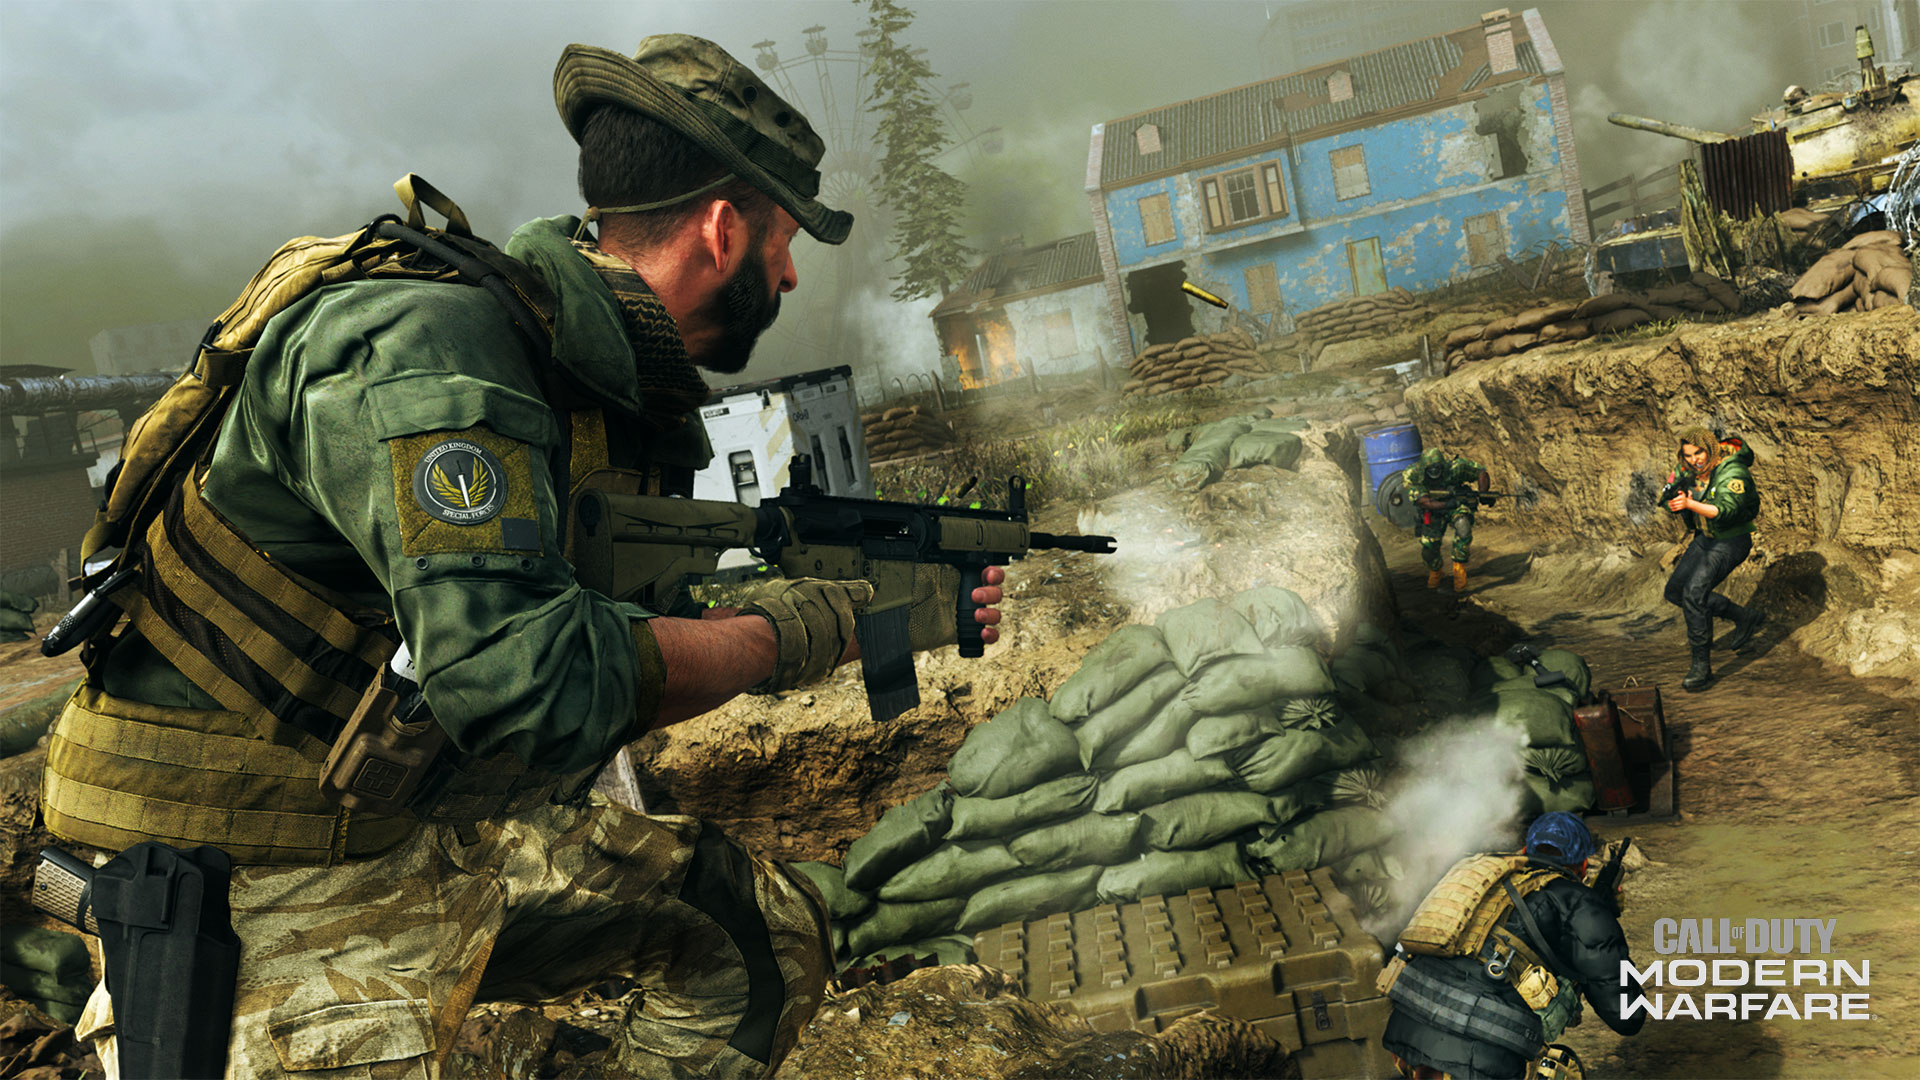 Experience Modern Warfare Multiplayer and Gunfight, Free-for-Everyone during the Free Access Multiplayer Weekend - Image 3